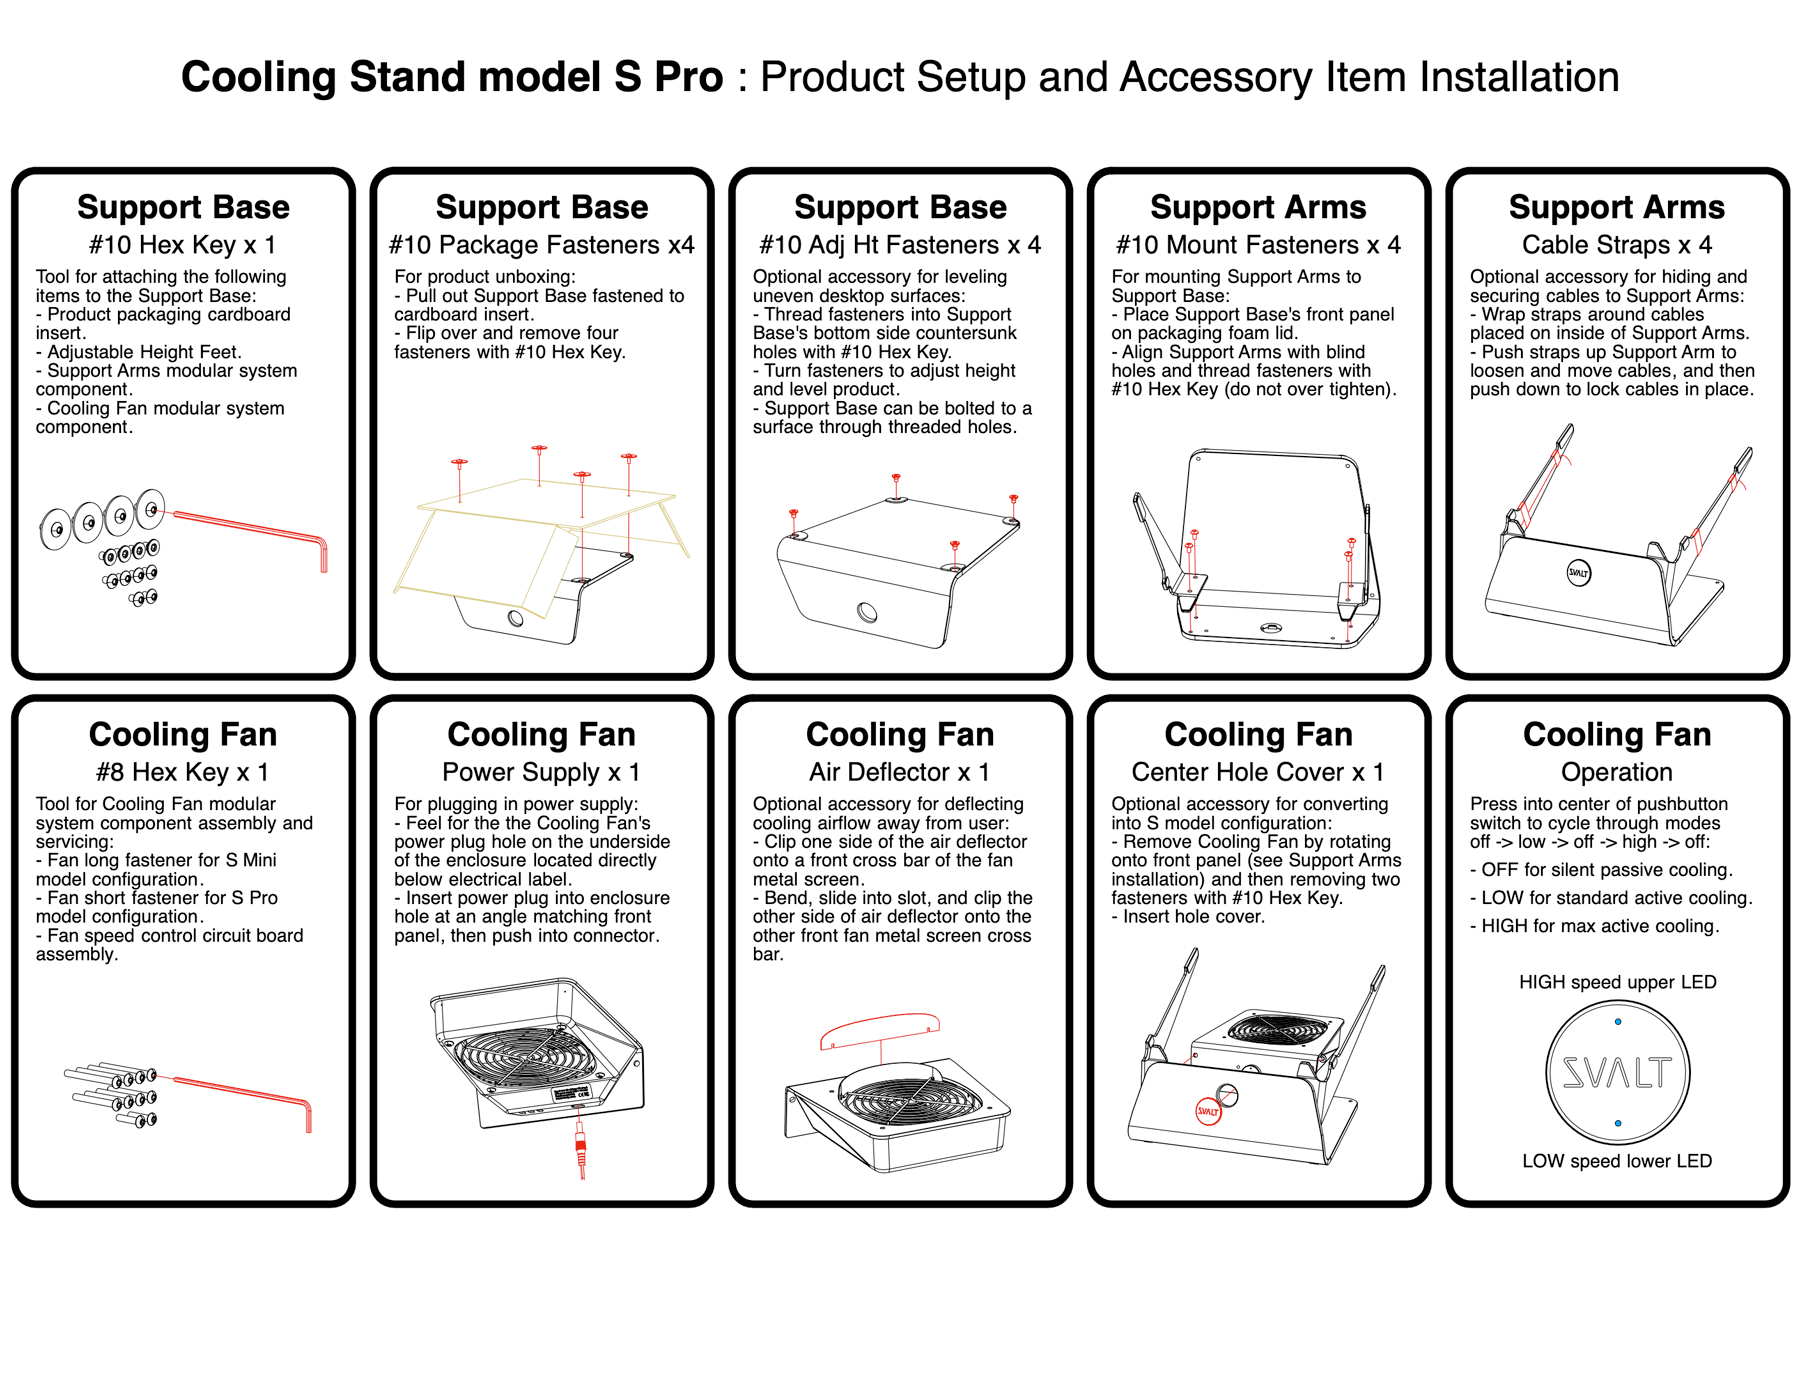 SVALT Cooling Stand model S Pro setup and accessory installation